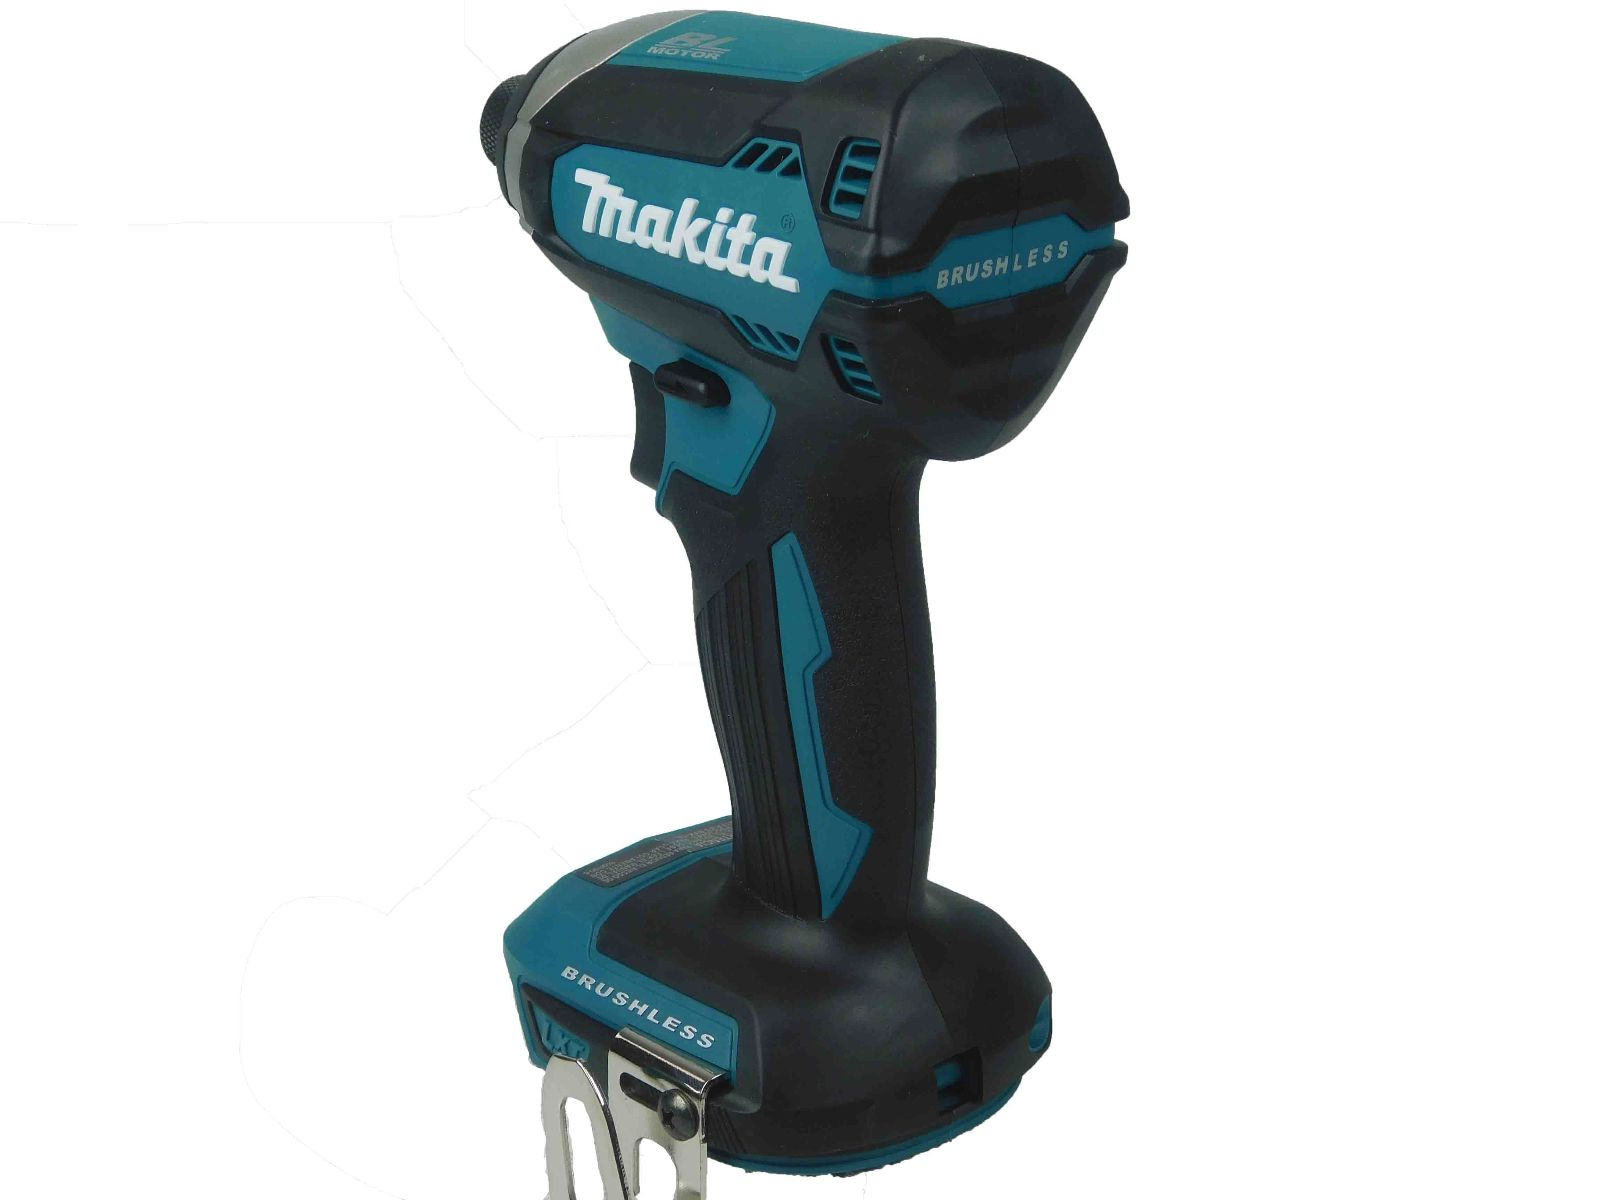 Makita-XDT13Z-18V-Lithium-Ion-Brushless-Cordless-Impact-Driver-image-3